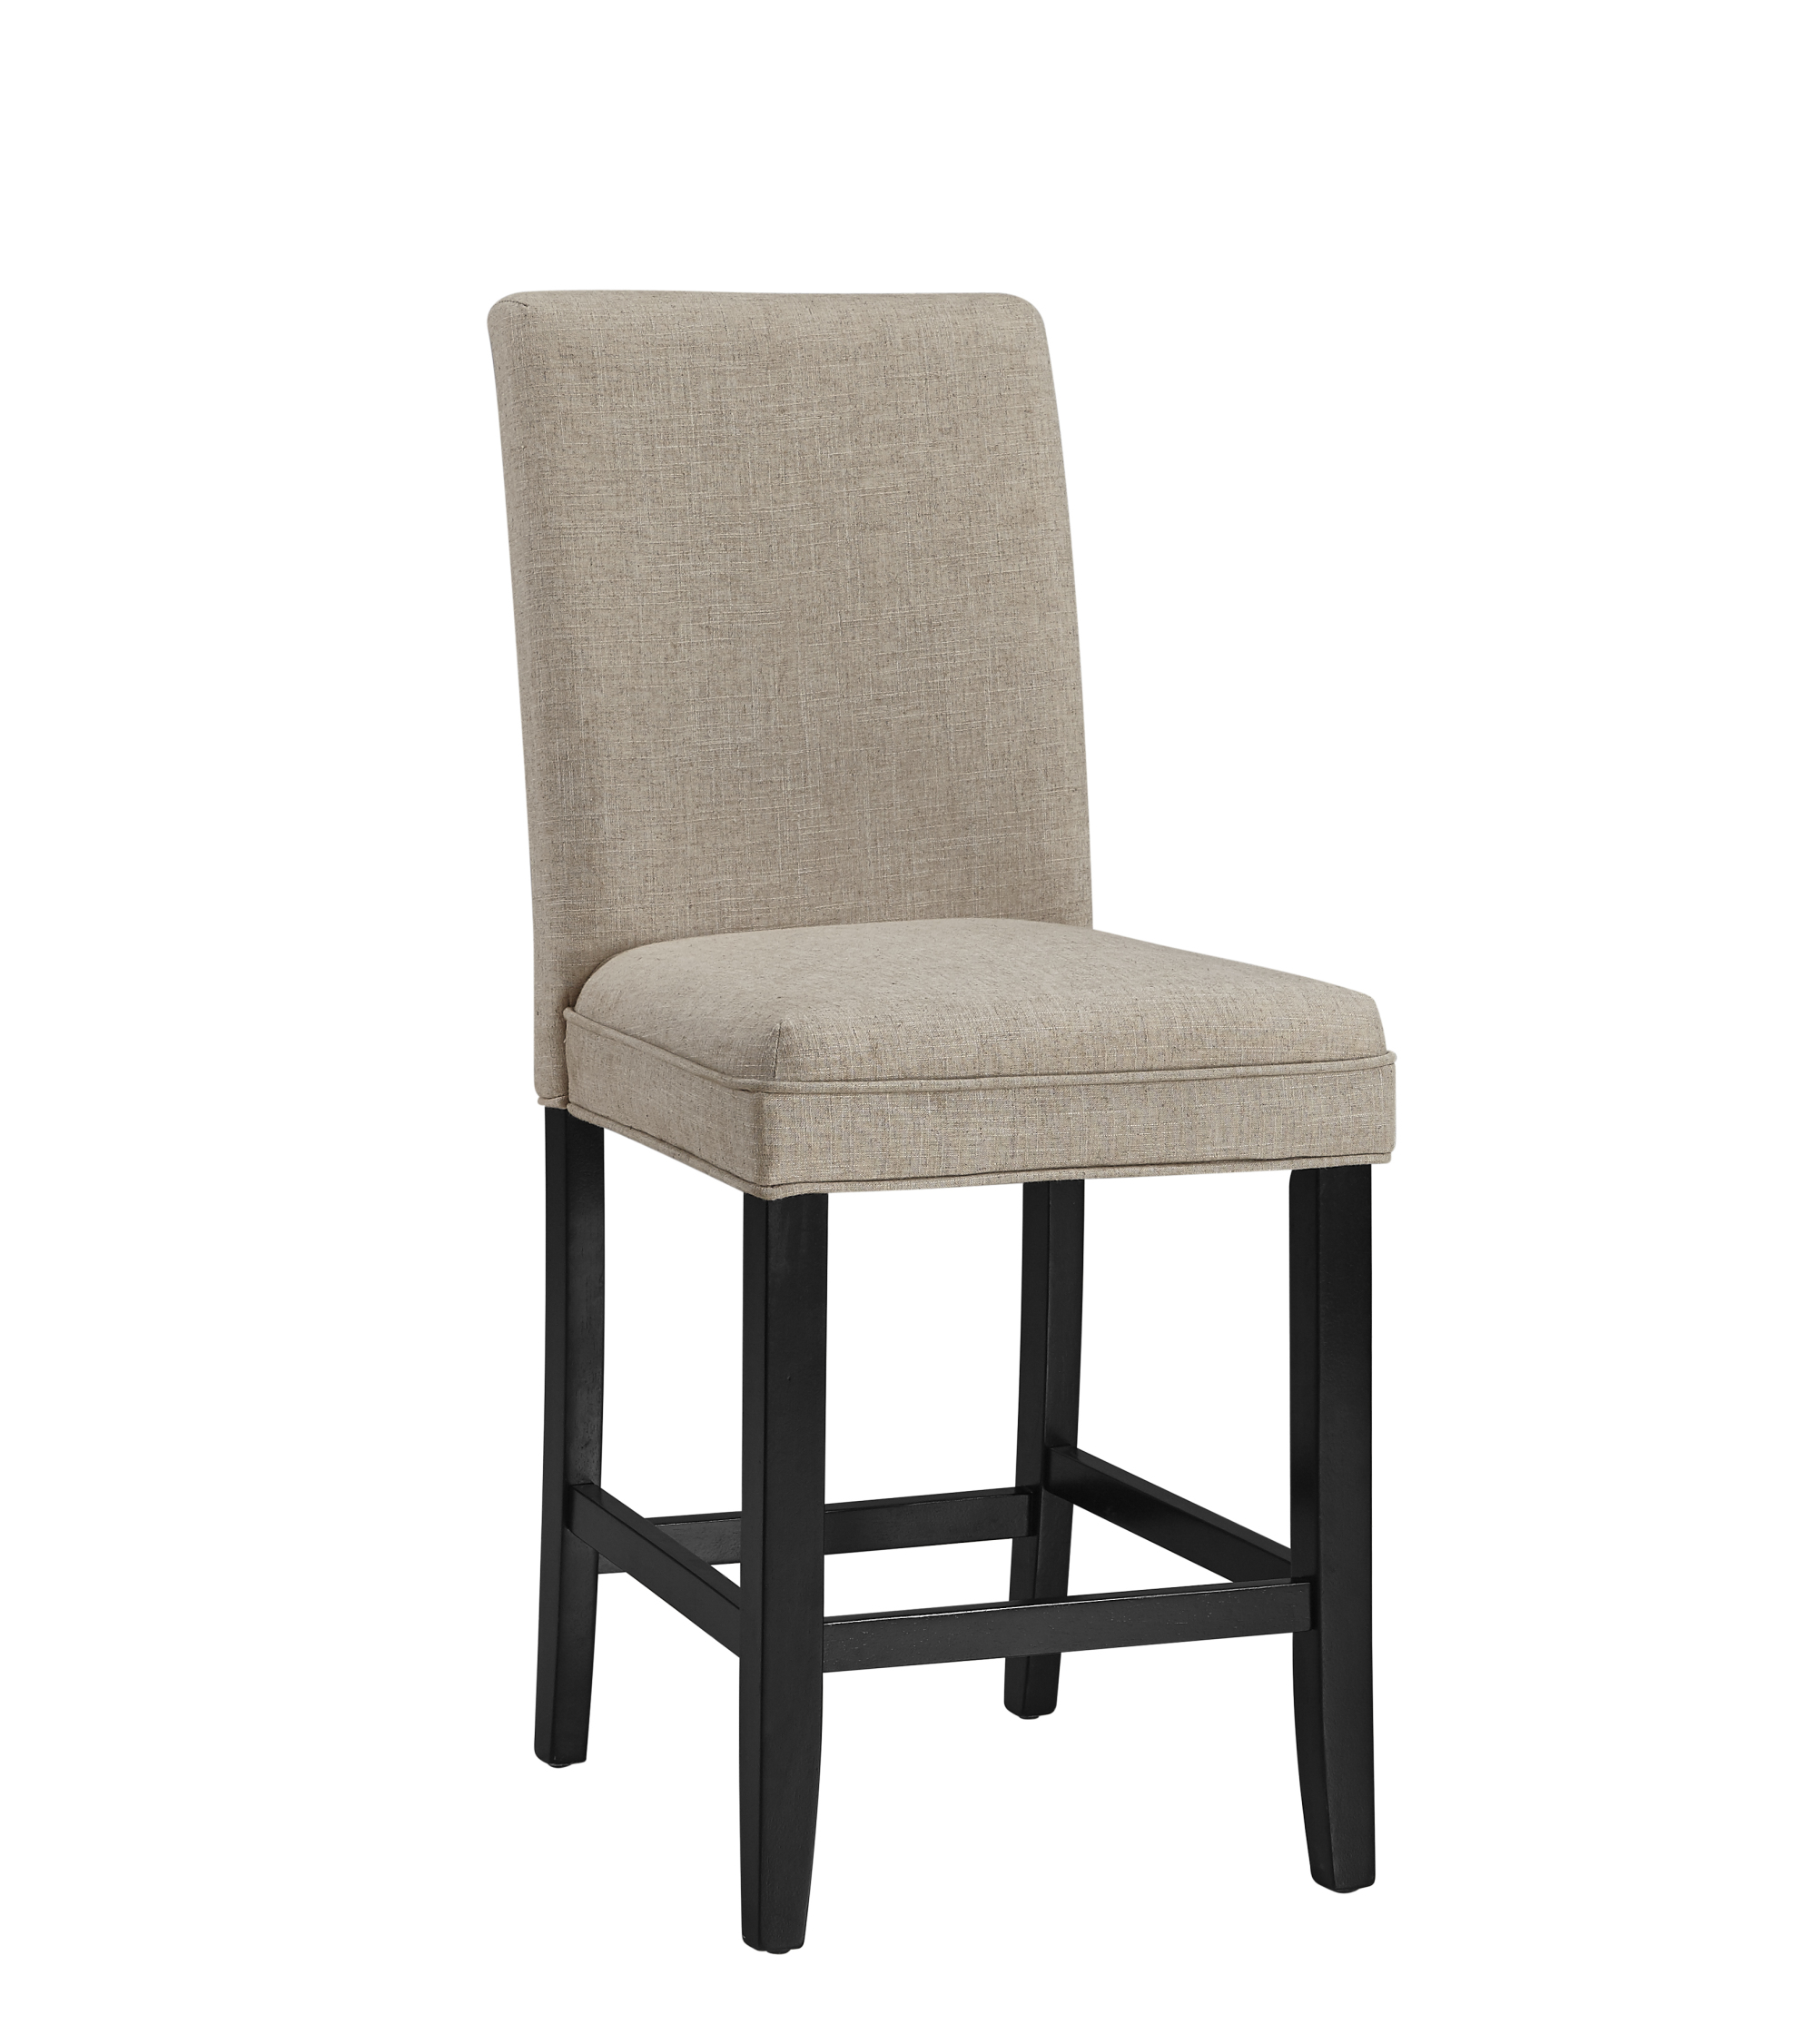 Belgian Luxe Colby Side Counter Stool by Bassett Mirror at Alison Craig Home Furnishings